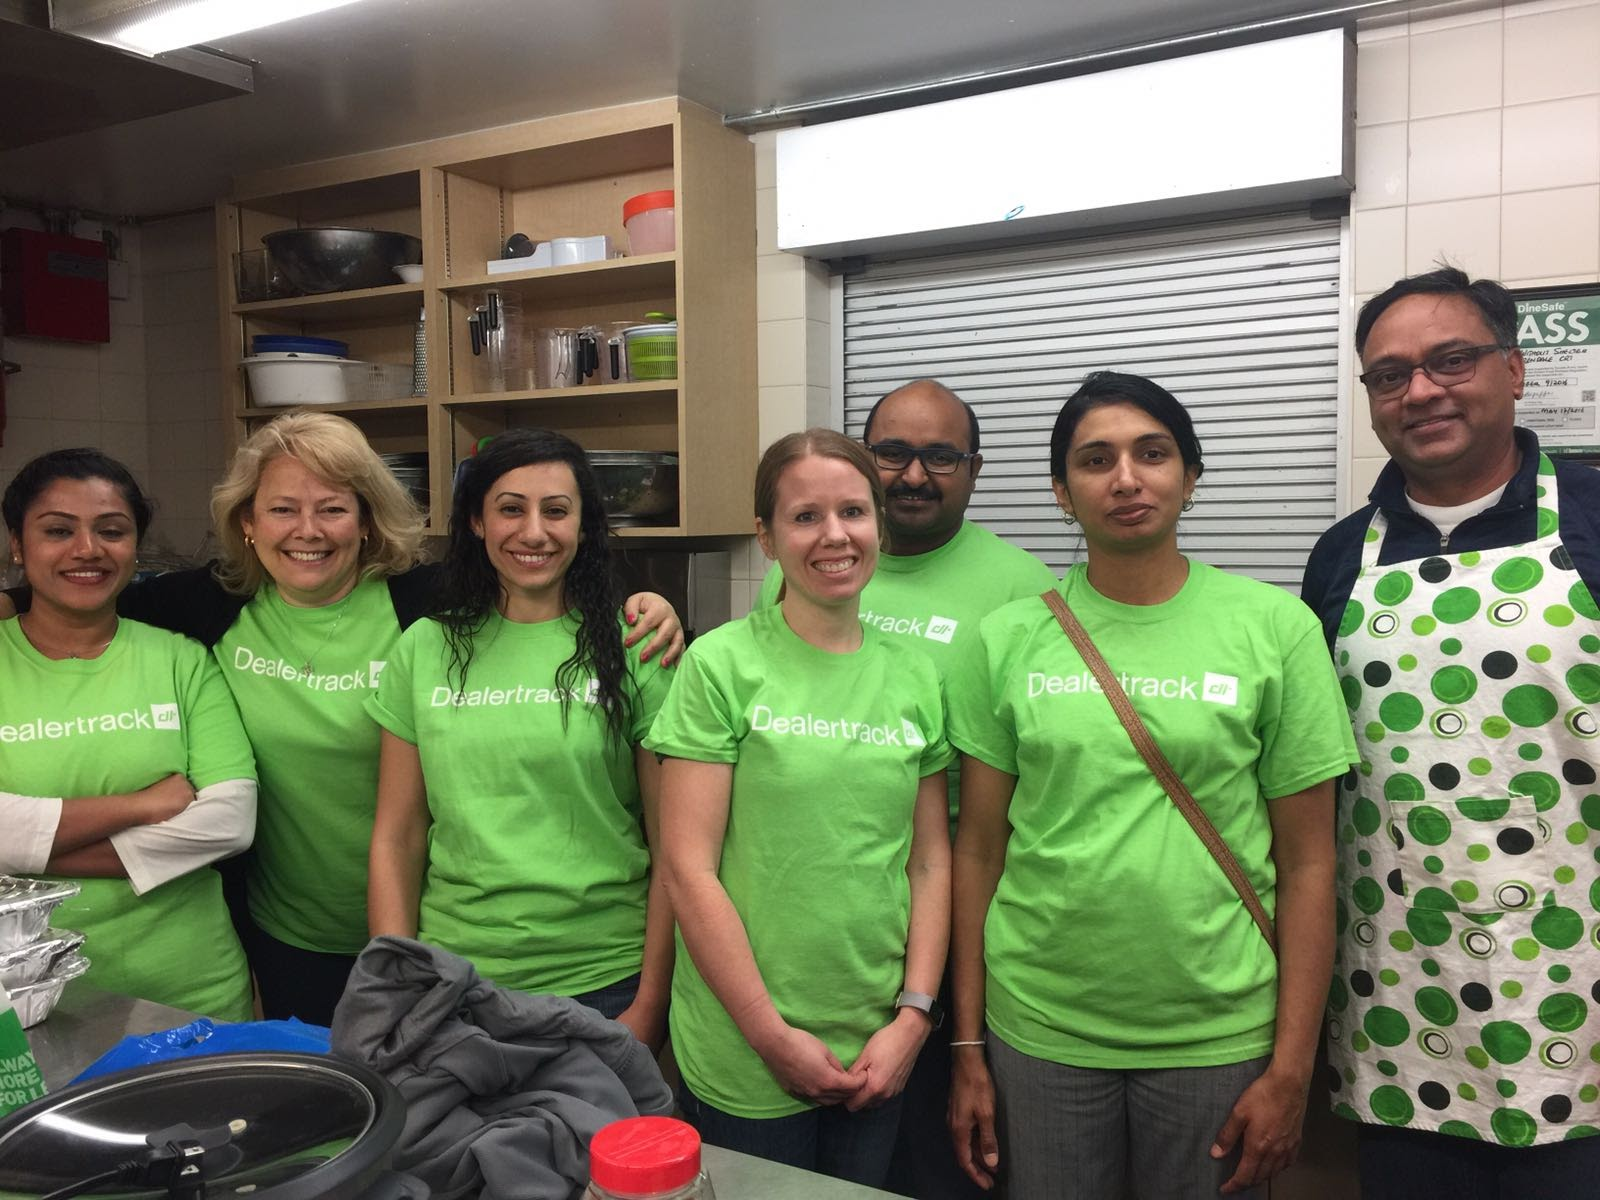 Cox Cares: Dealertrack Canada gives back to homeless youth shelter